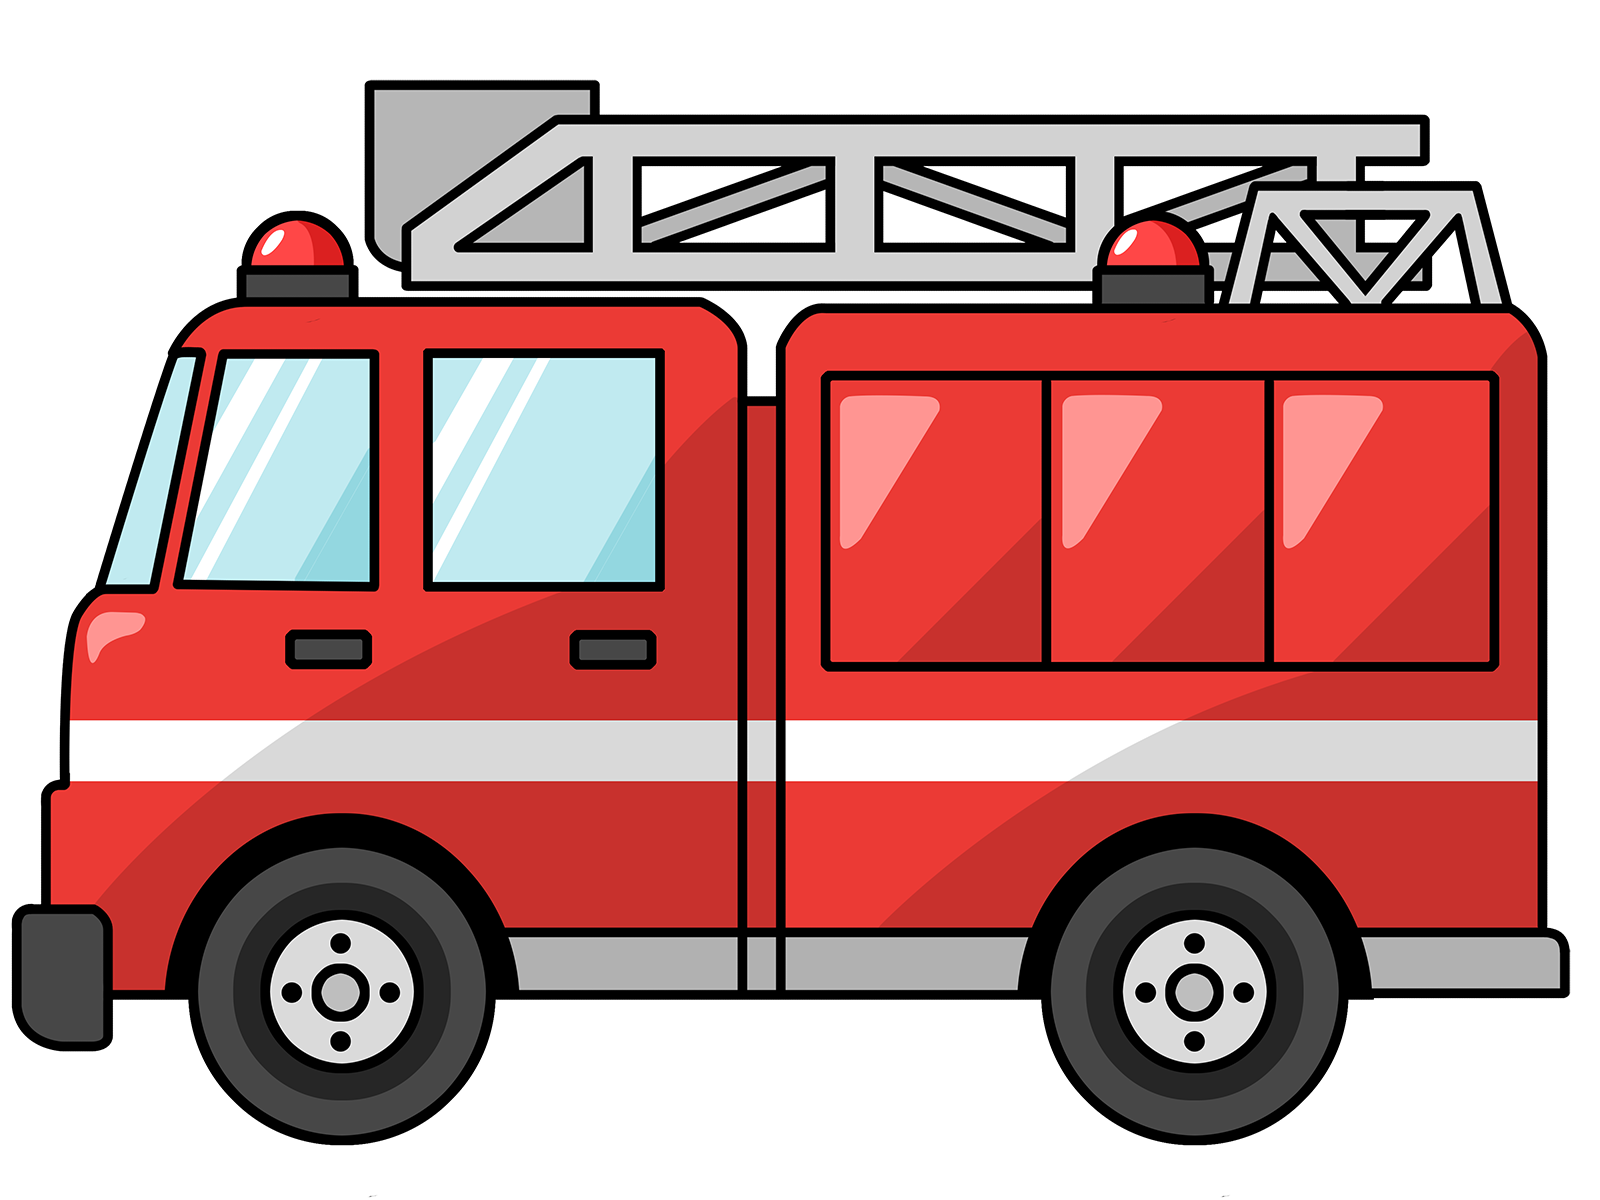 fire truck clipart google search education pinterest Firefighter Boots Clip Art Firefighter Boots Clip Art